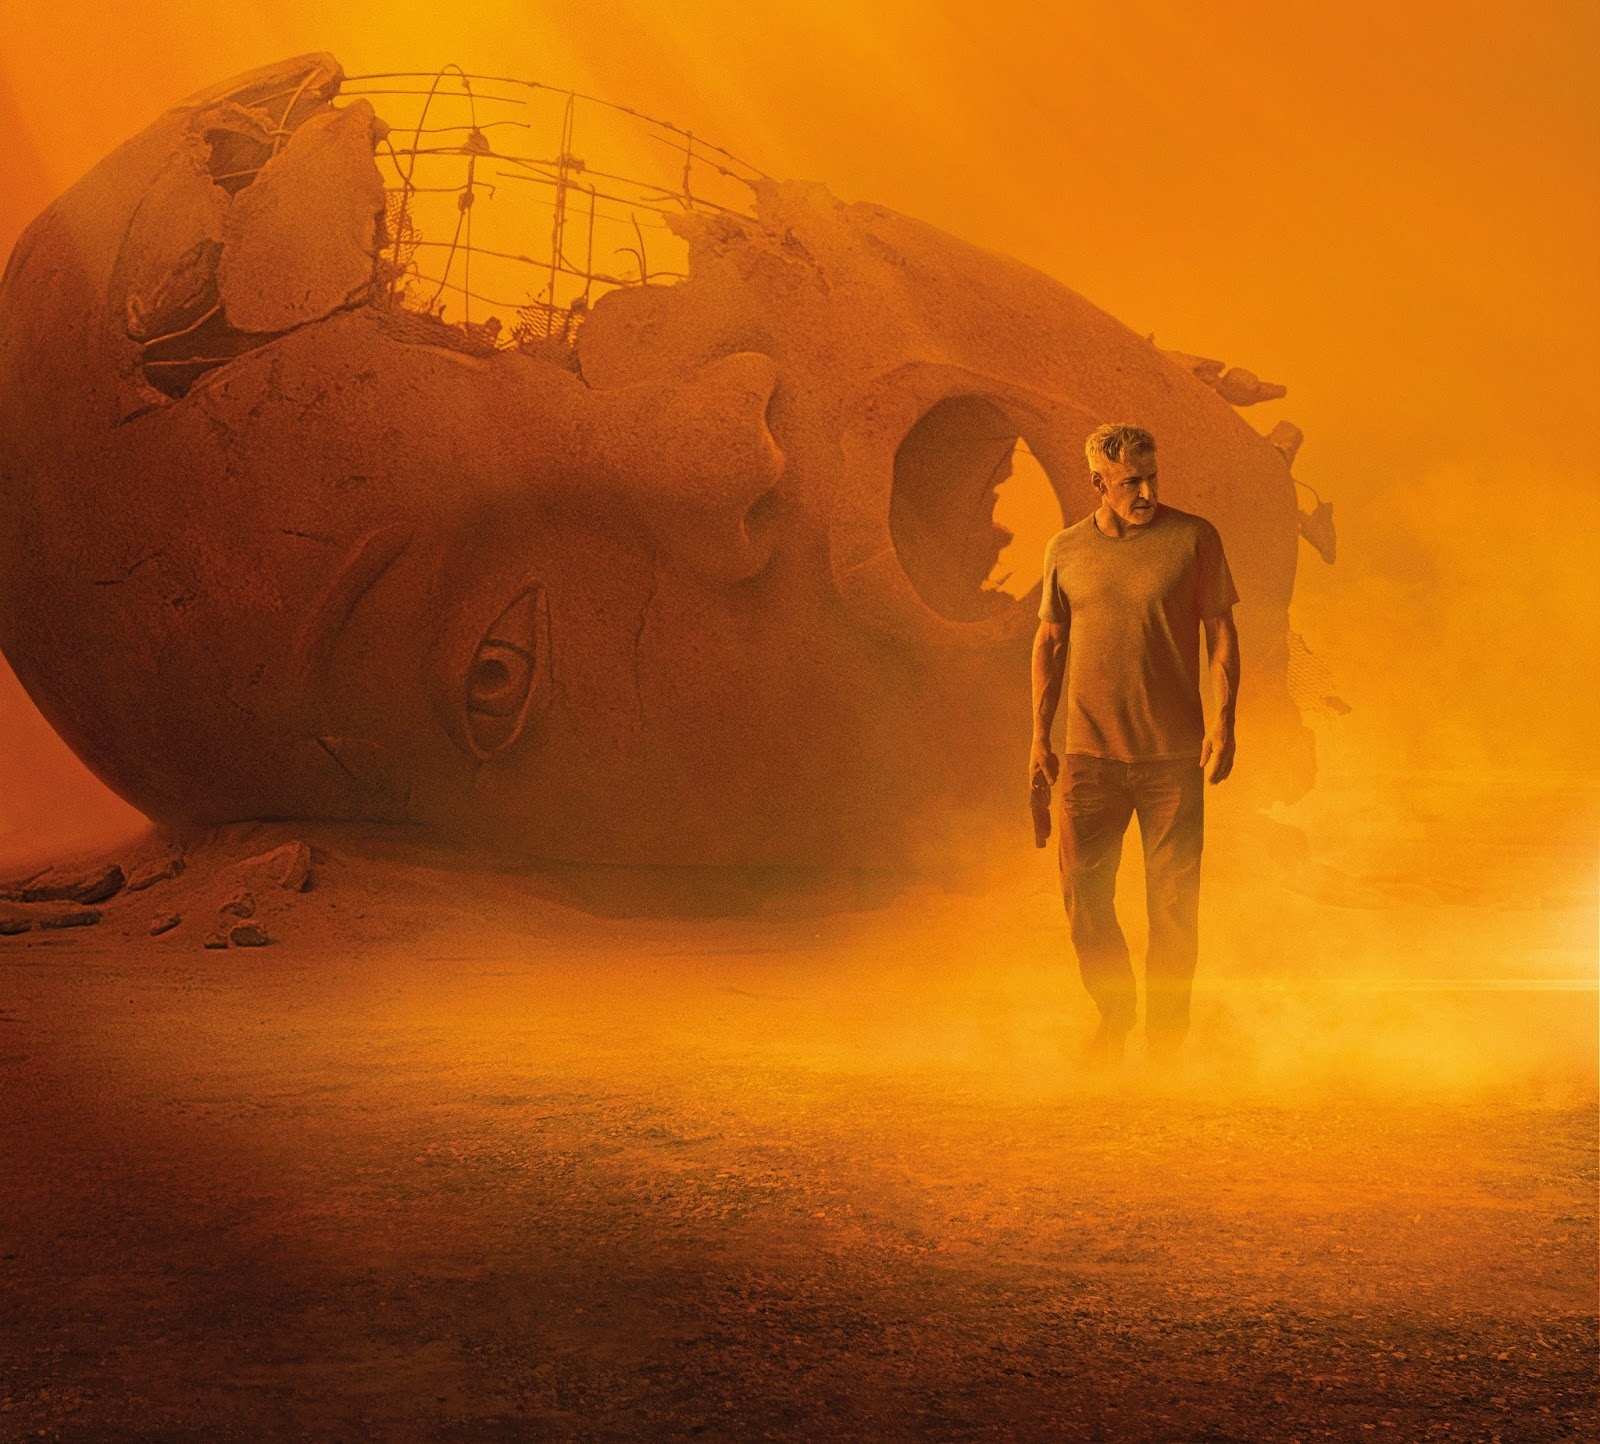 Blade Runner 2049 Gets Coveted R-rating - Bloody